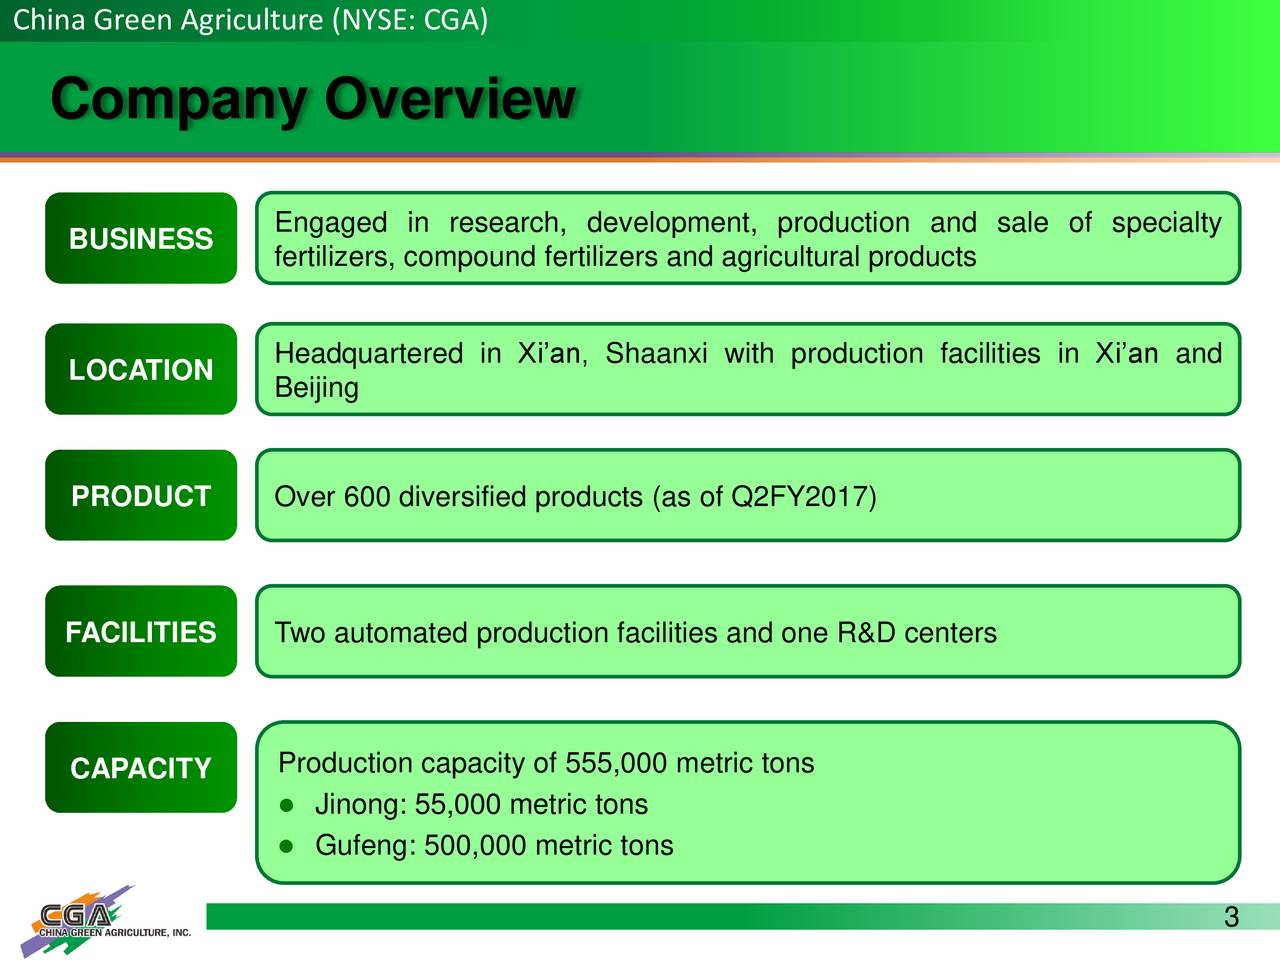 Company Overview Engaged in research, development, production and sale of specialty BUSINESS fertilizers, compound fertilizers and agricultural products LOCATION Headquartered in Xian, Shaanxi with production facilities in Xian and Beijing PRODUCT Over 600 diversified products (as of Q2FY2017) FACILITIES Two automated production facilities and one R&D centers Production capacity of 555,000 metric tons CAPACITY Jinong: 55,000 metric tons Gufeng: 500,000 metric tons 3